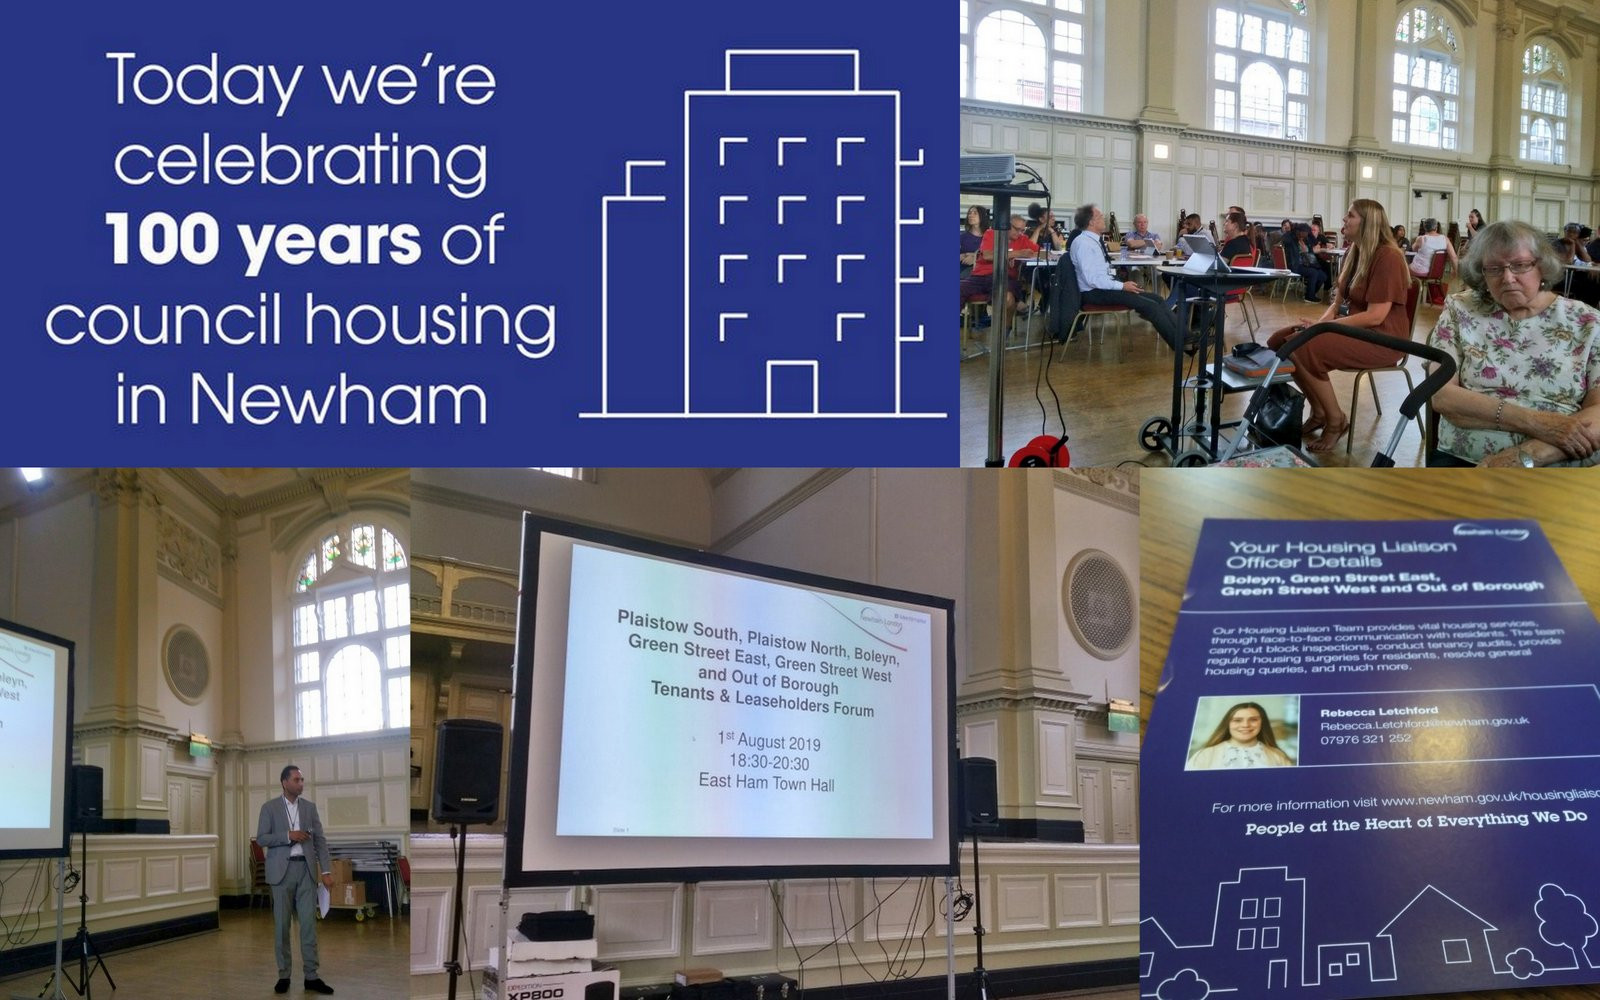 John's Labour blog: To the last 100 years of Council Housing in